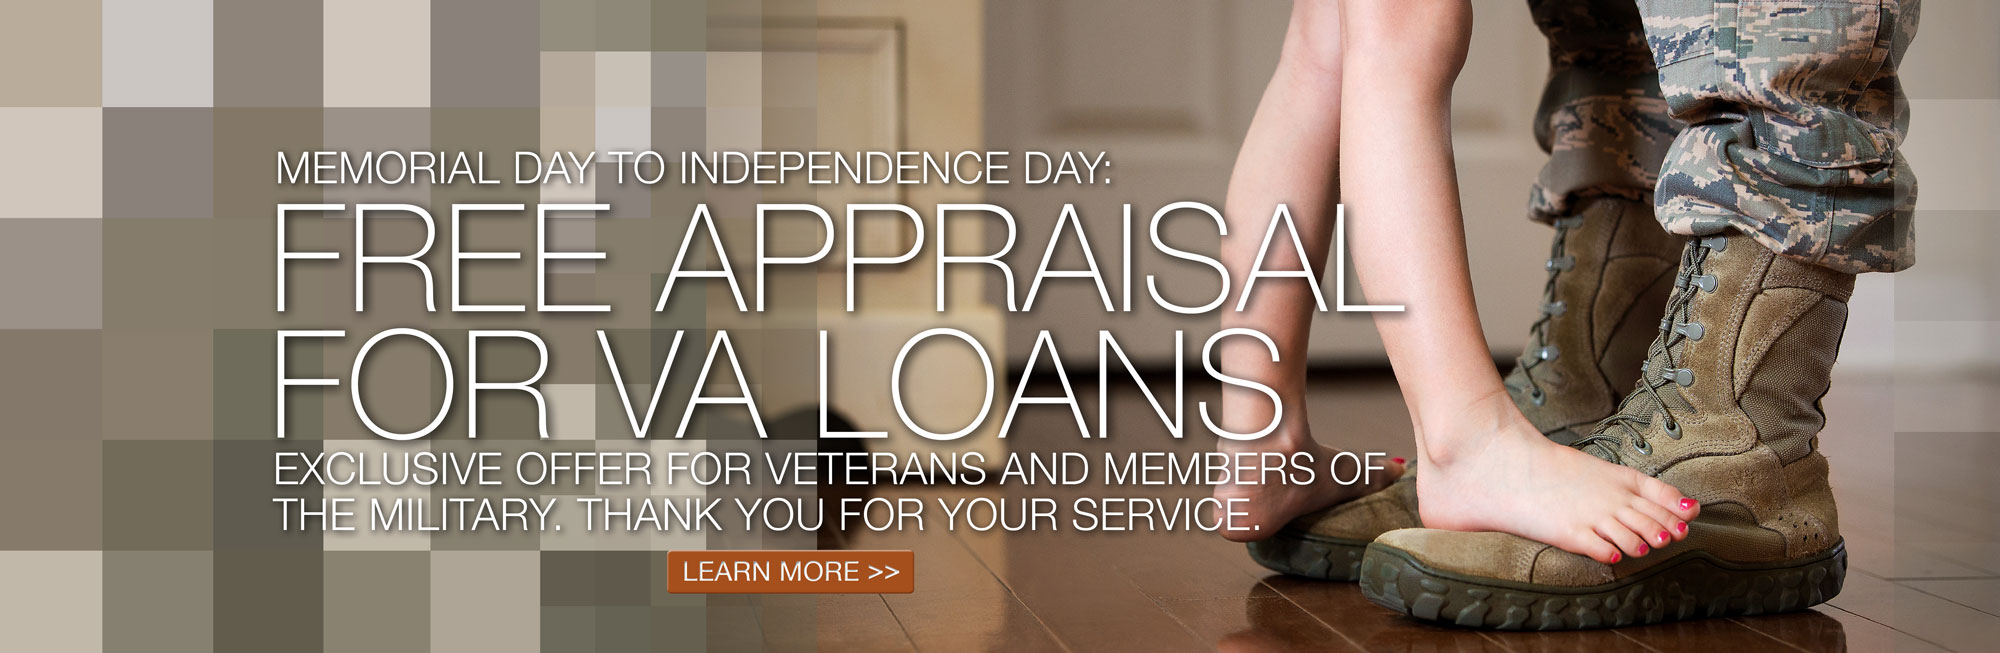 Free Appraisal on VA Loans, Memorial Day until Independence Day. Thank you for your service. Click to learn more.